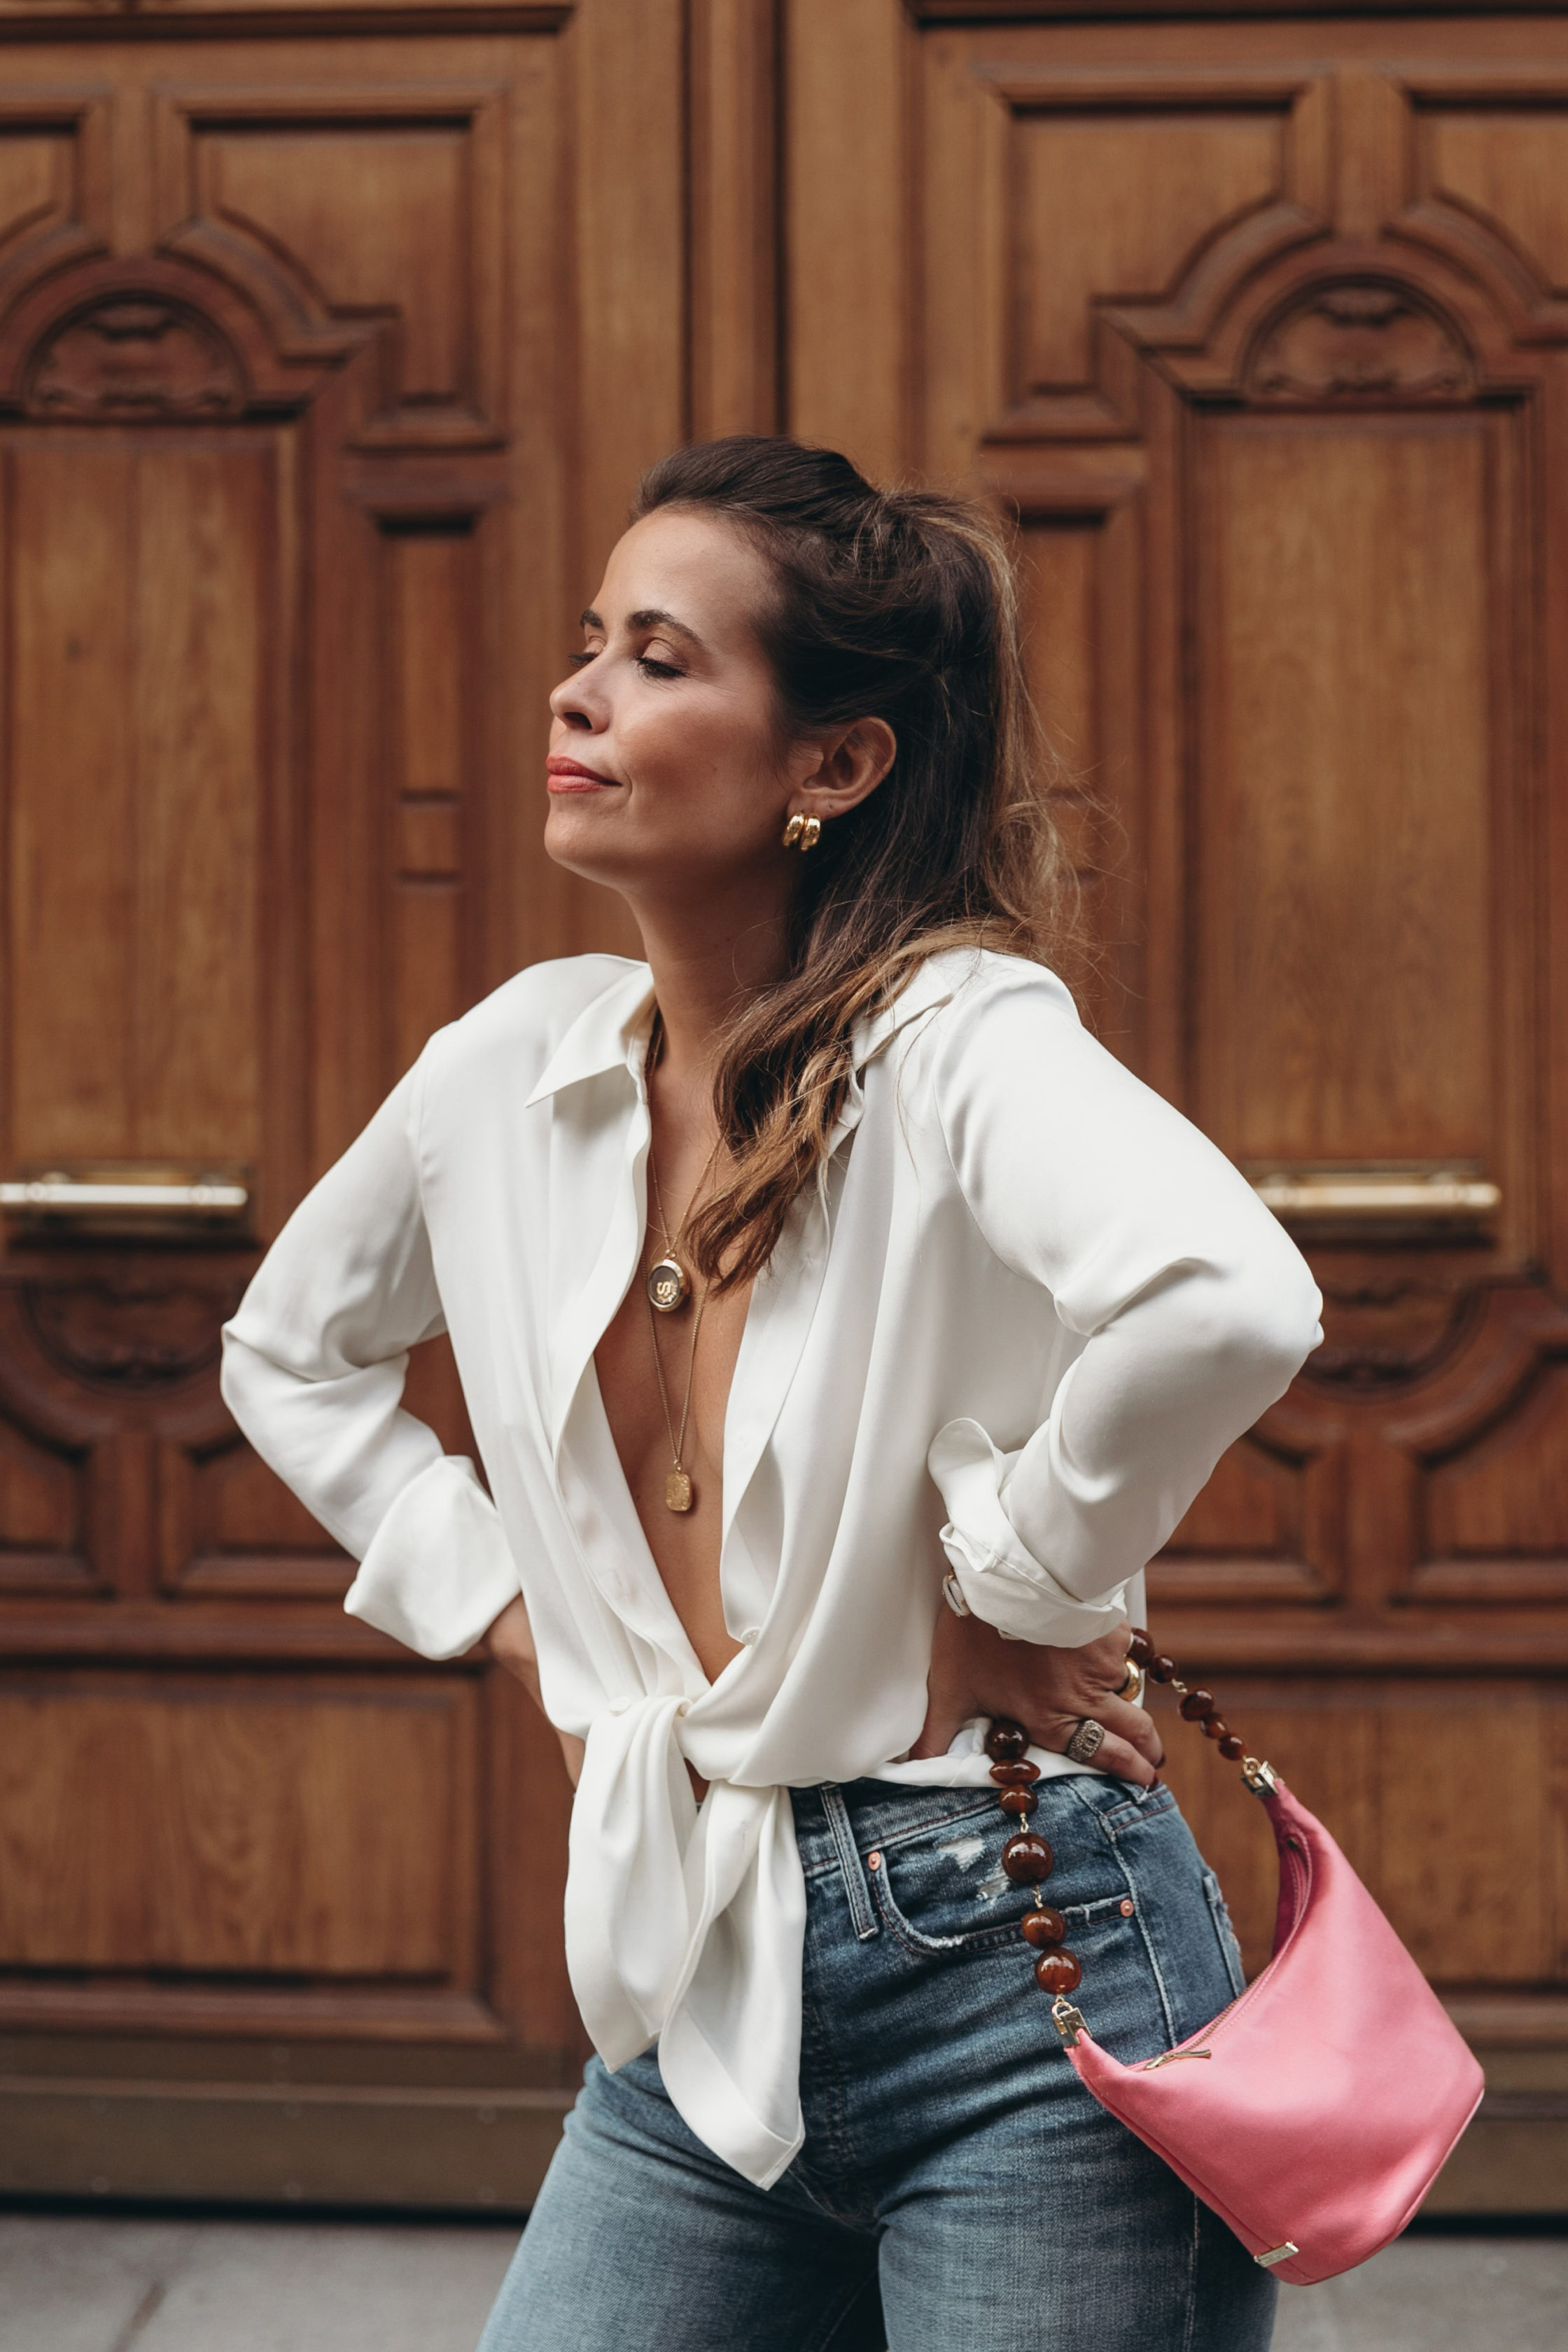 Finding the perfect White Blouse for your wardrobe at Saks Fifth Avenue